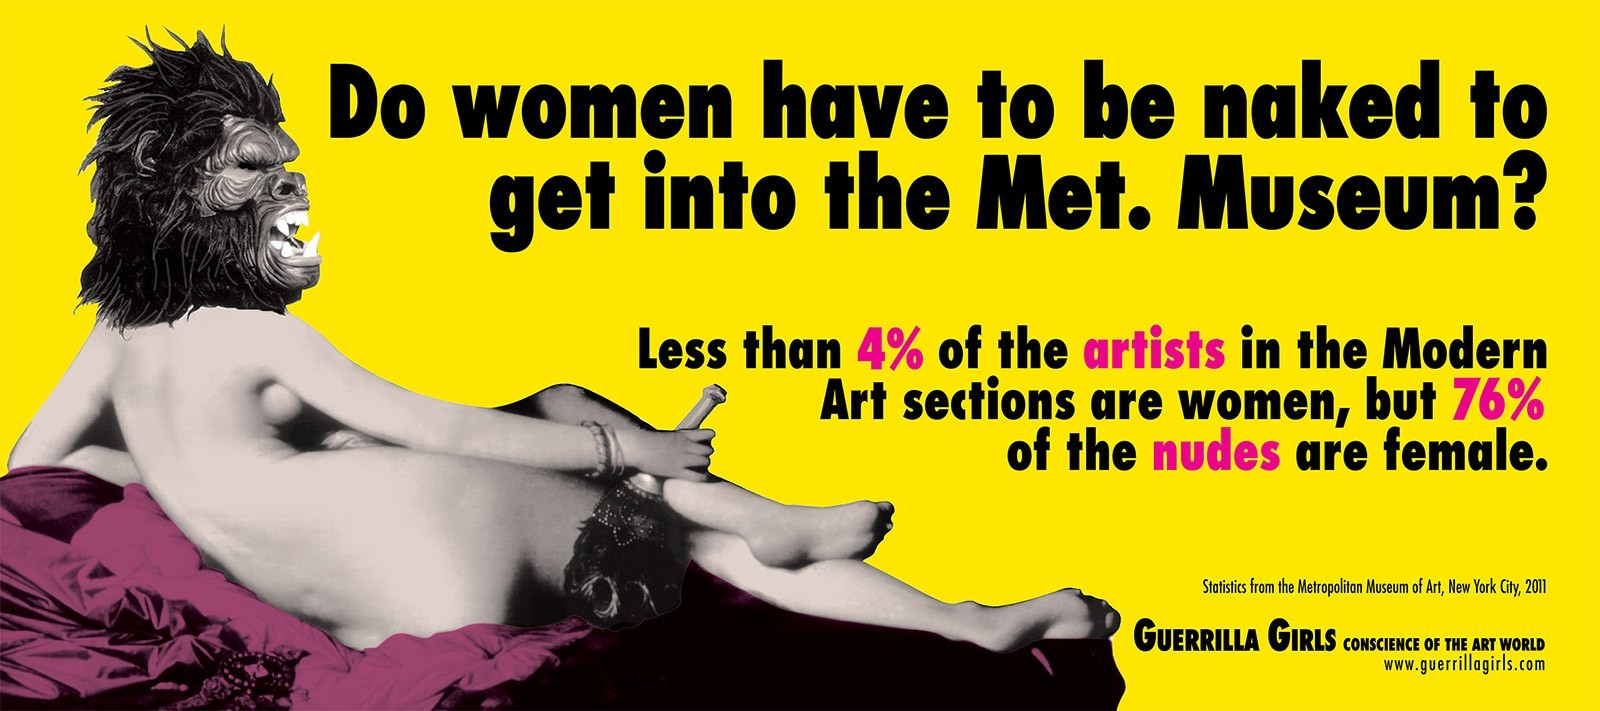 Do Women Have To Be Naked To Get Into The Met. Museum